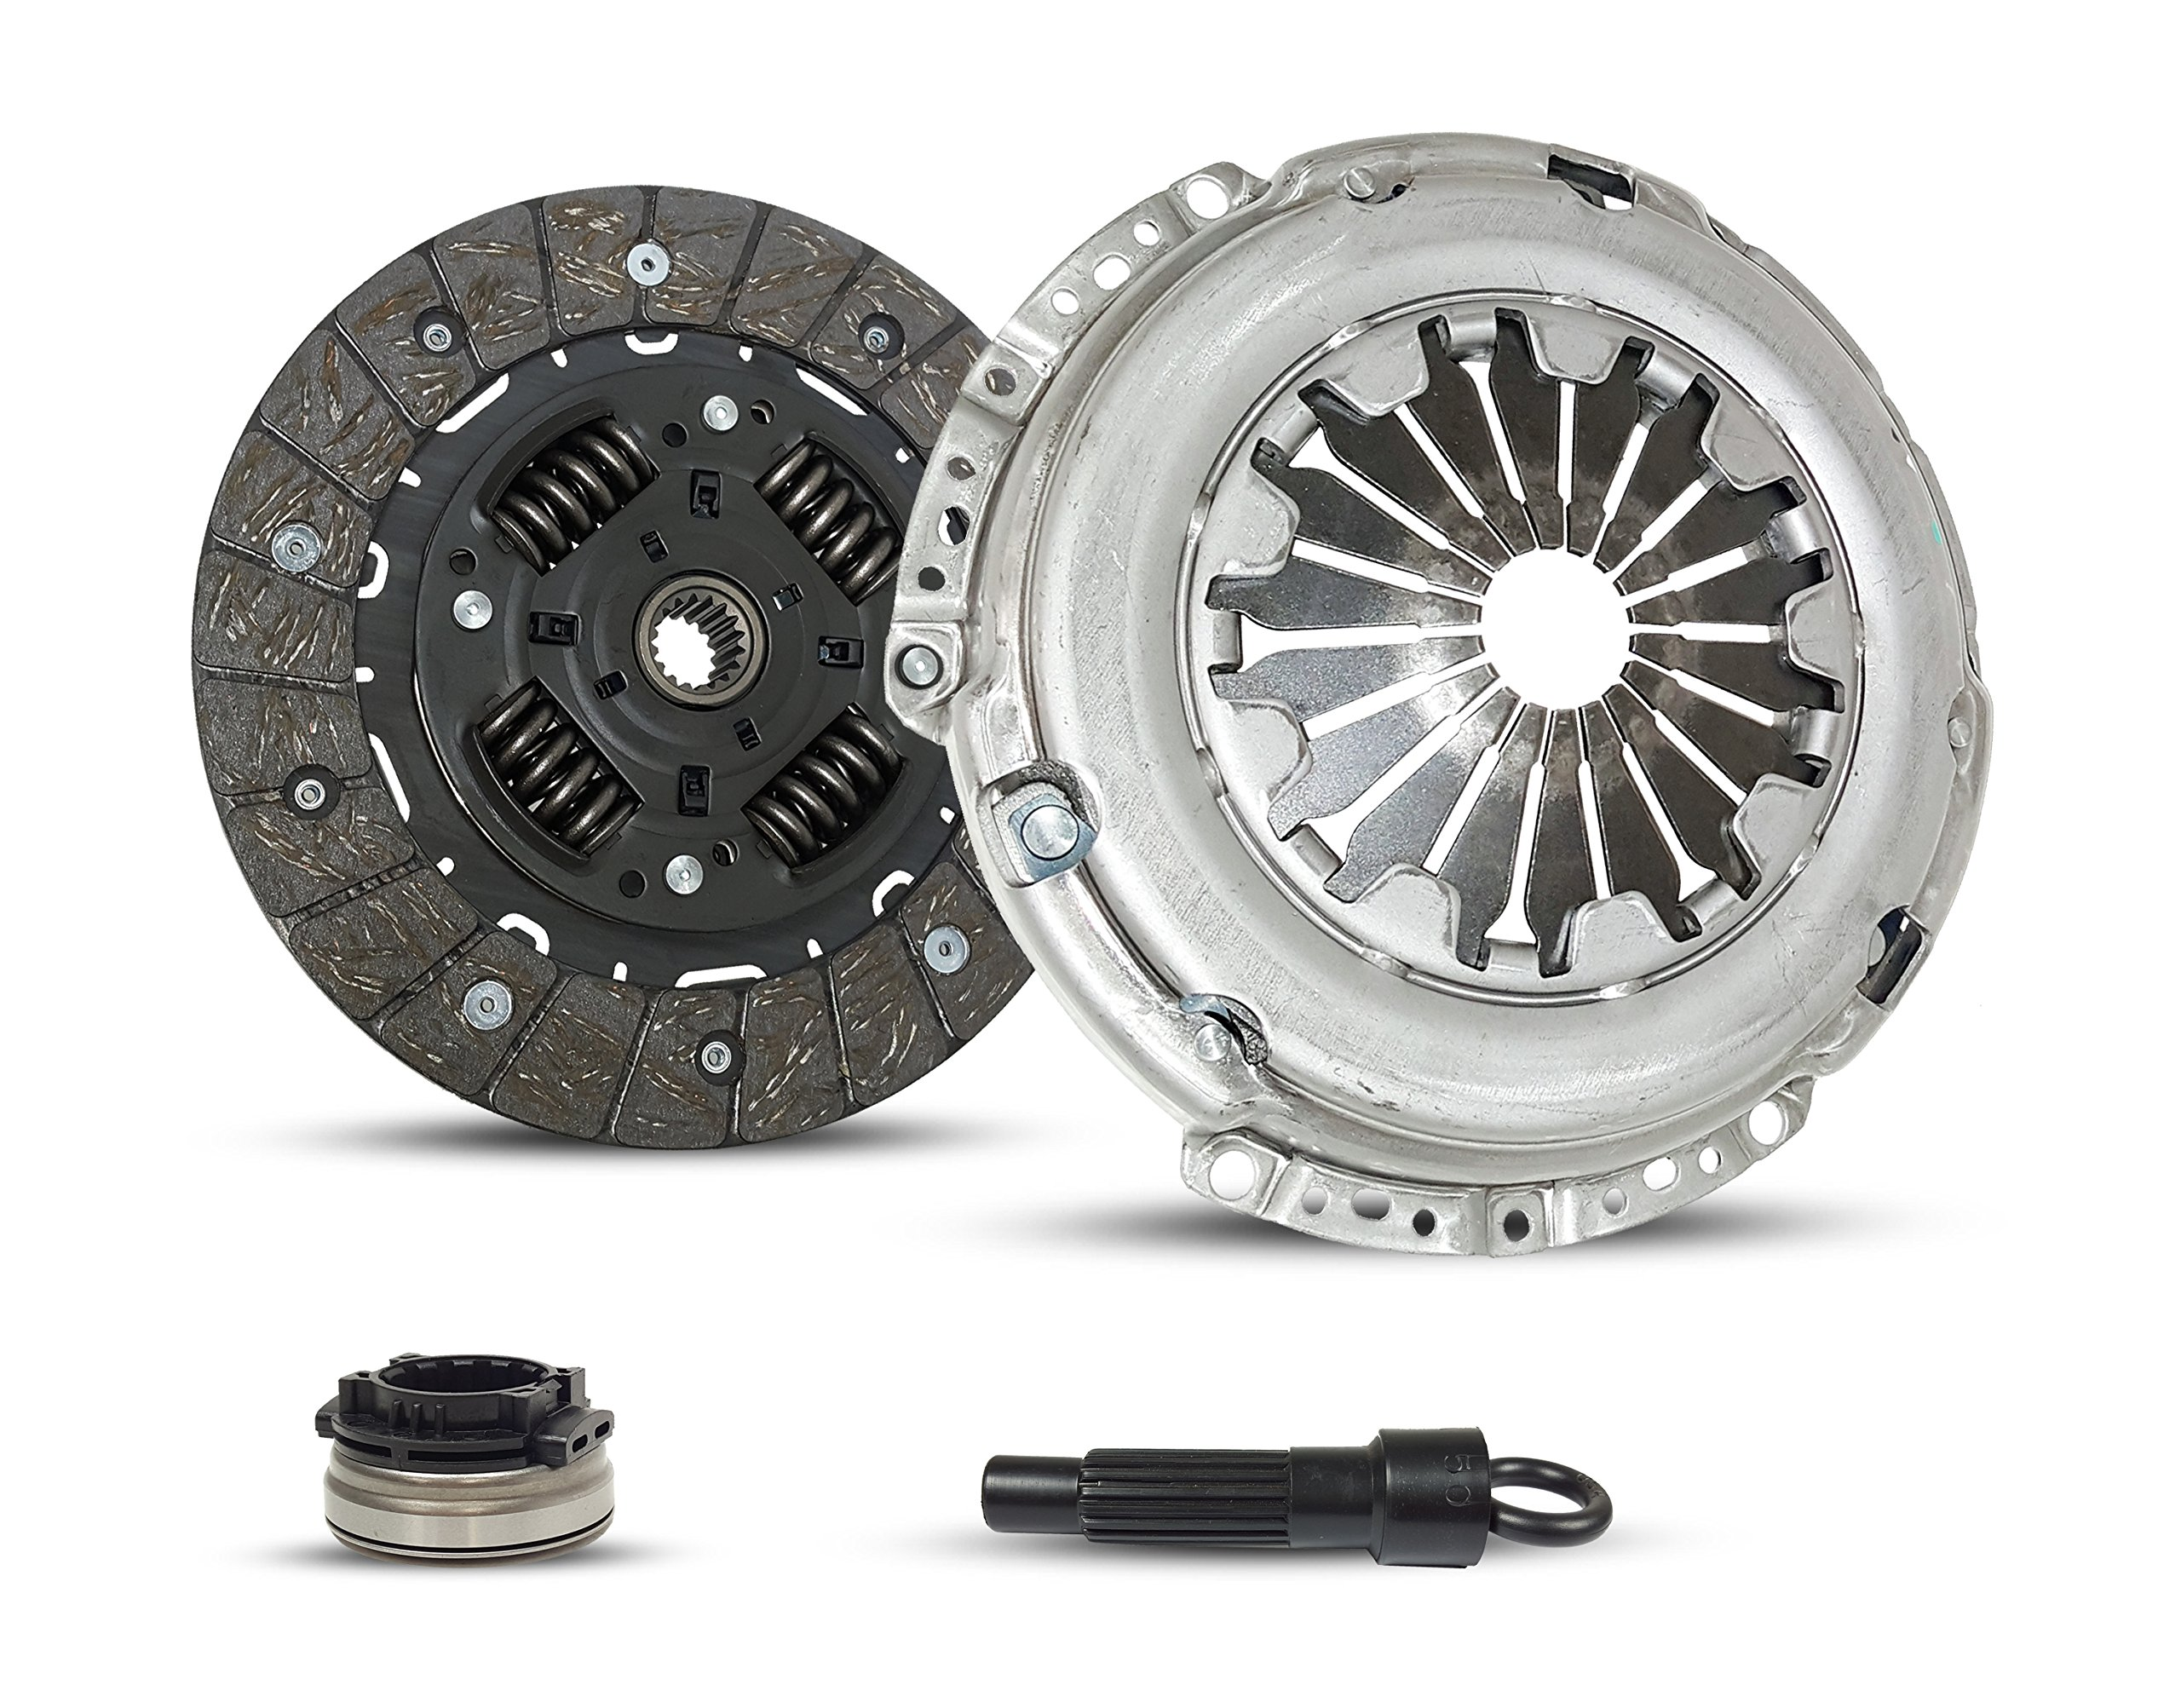 Clutch Kit Works With Mini Cooper Base Clubman Pepper Salt Hatchback Convertible 2007-2011 1.6L l4 GAS DOHC Naturally Aspirated (6-Speed)